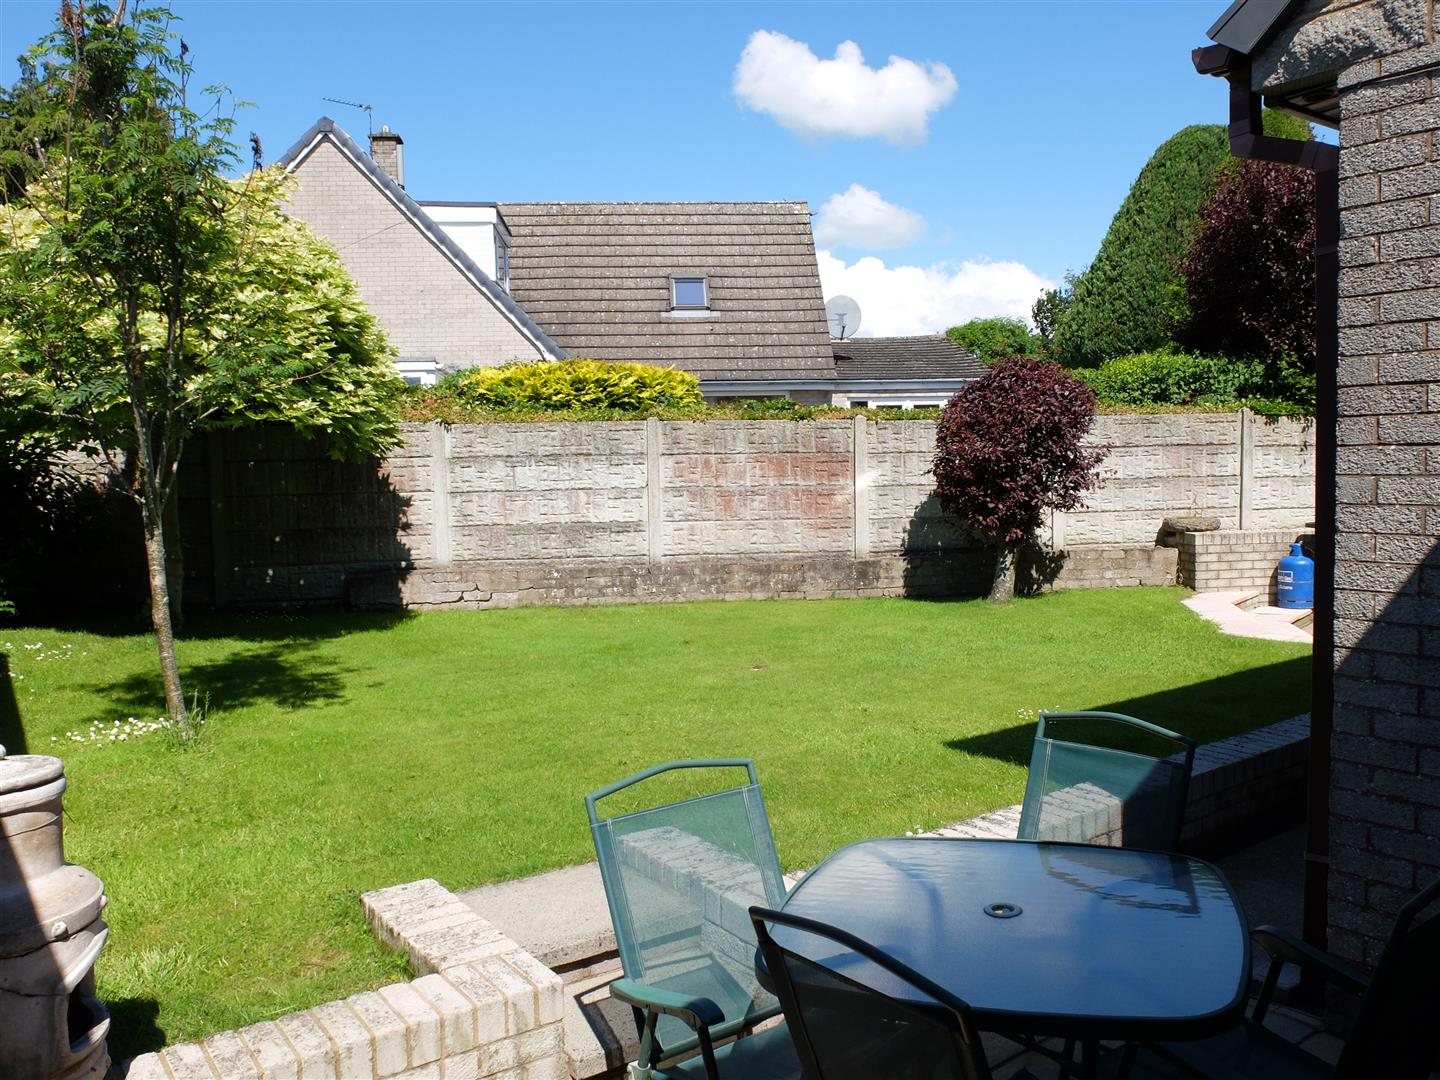 Beech Nook Lonning Foot Carlisle Home For Sale